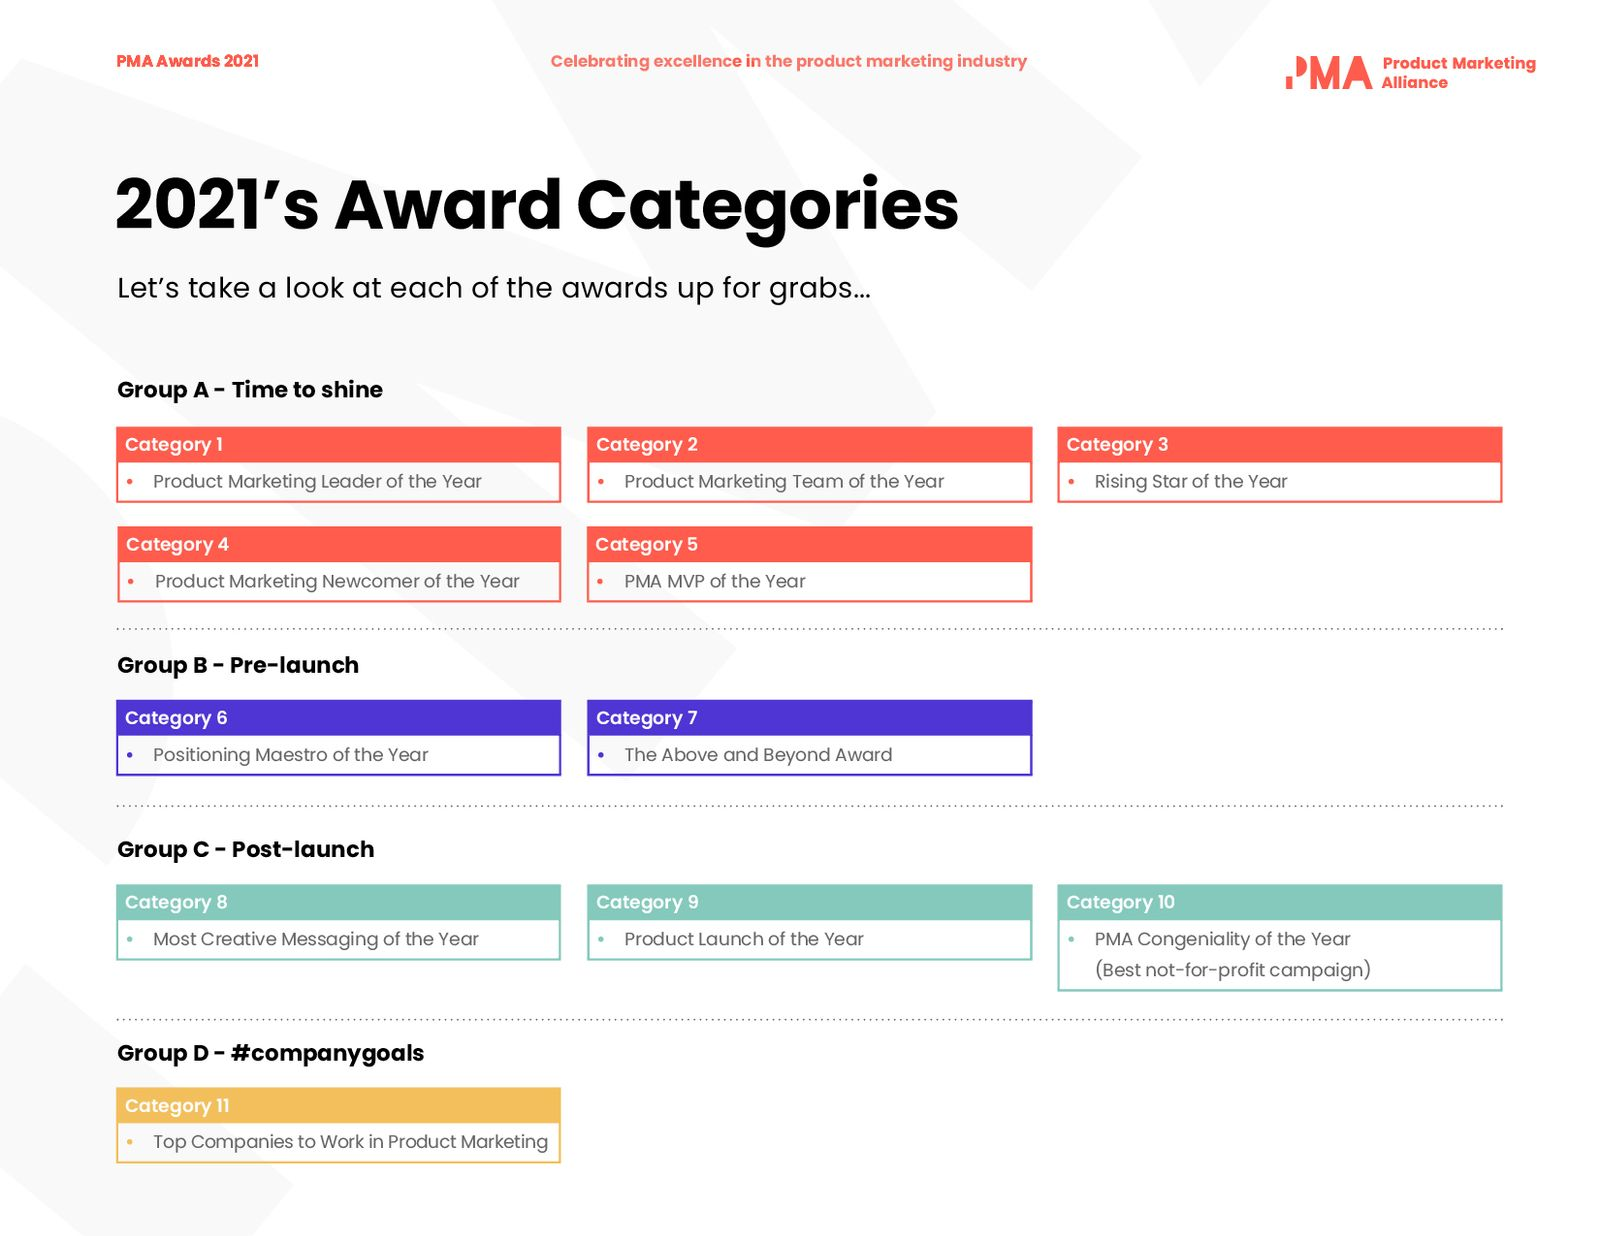 Categories for the Product Marketing Awards 2021